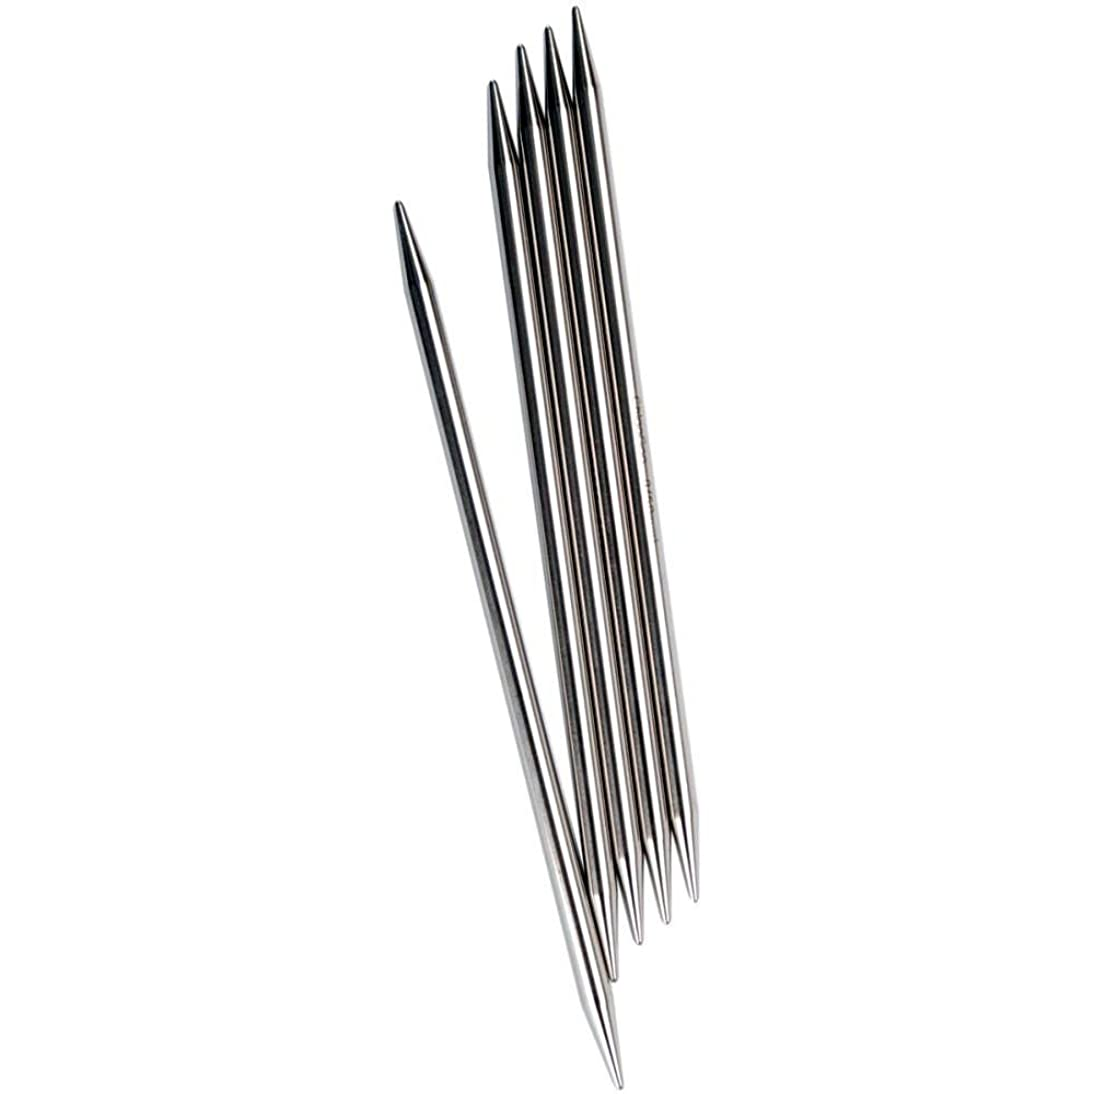 ChiaoGoo Red Double Point 6-inch (15cm) Stainless Steel Knitting Needle; Size US 5 (3.75mm) 6006-5